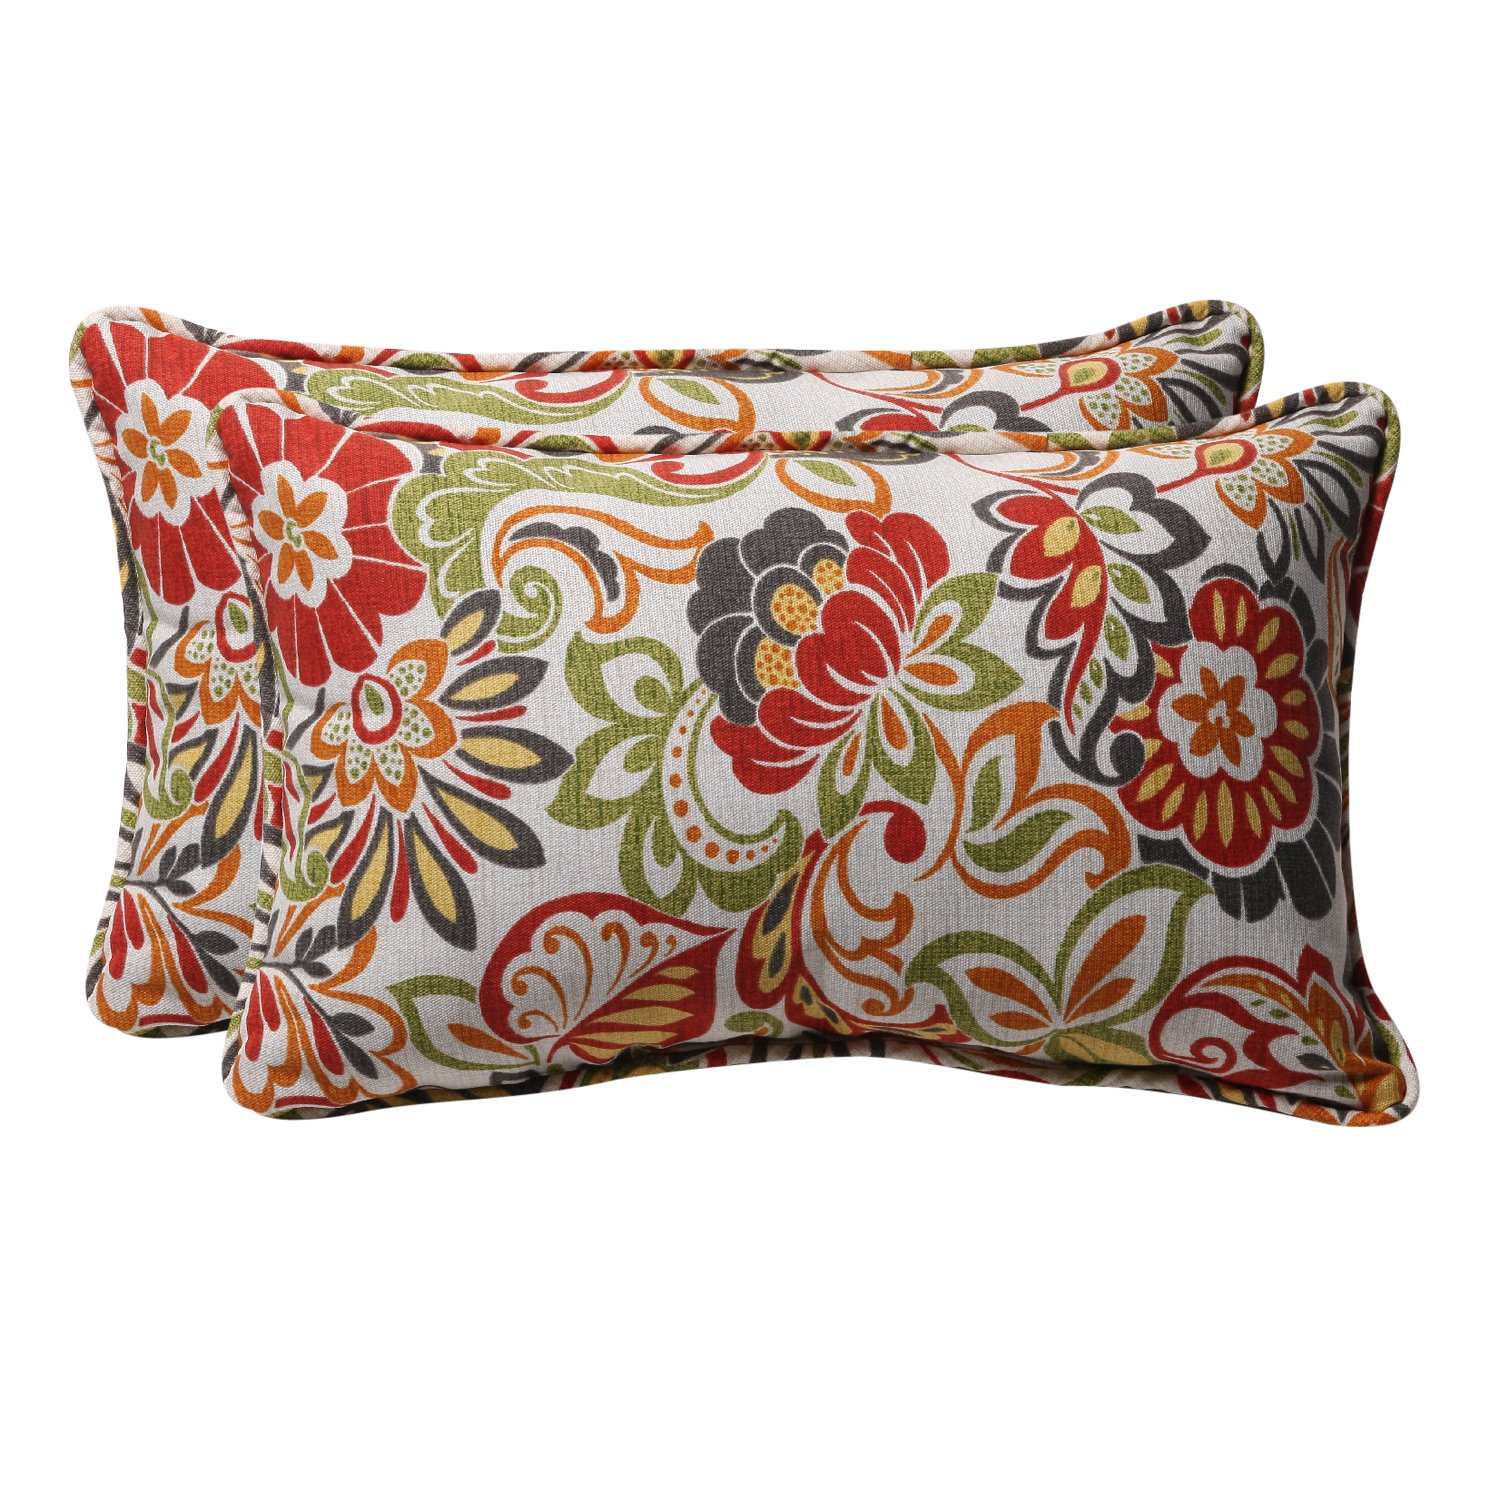 Decorative Pillows Images : Designer Sofa Pillows - Sofa Design